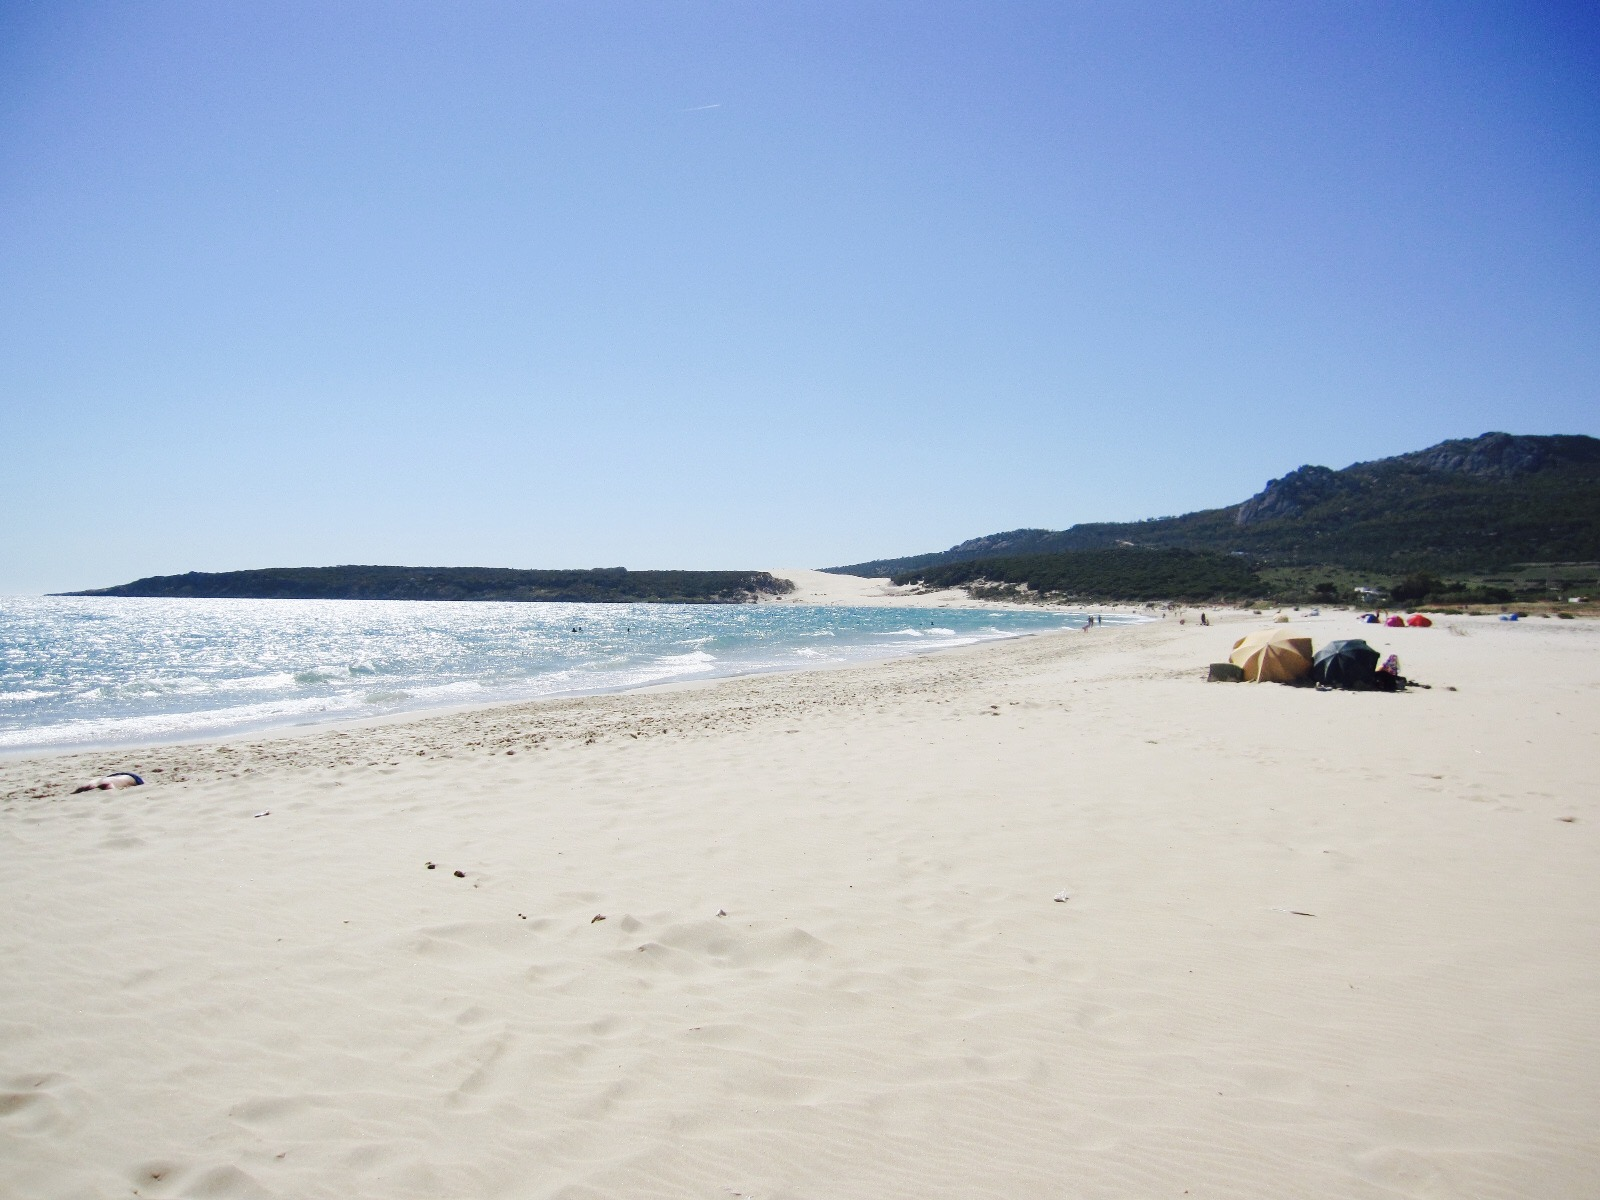 Strand in Tarifa, Andalusien